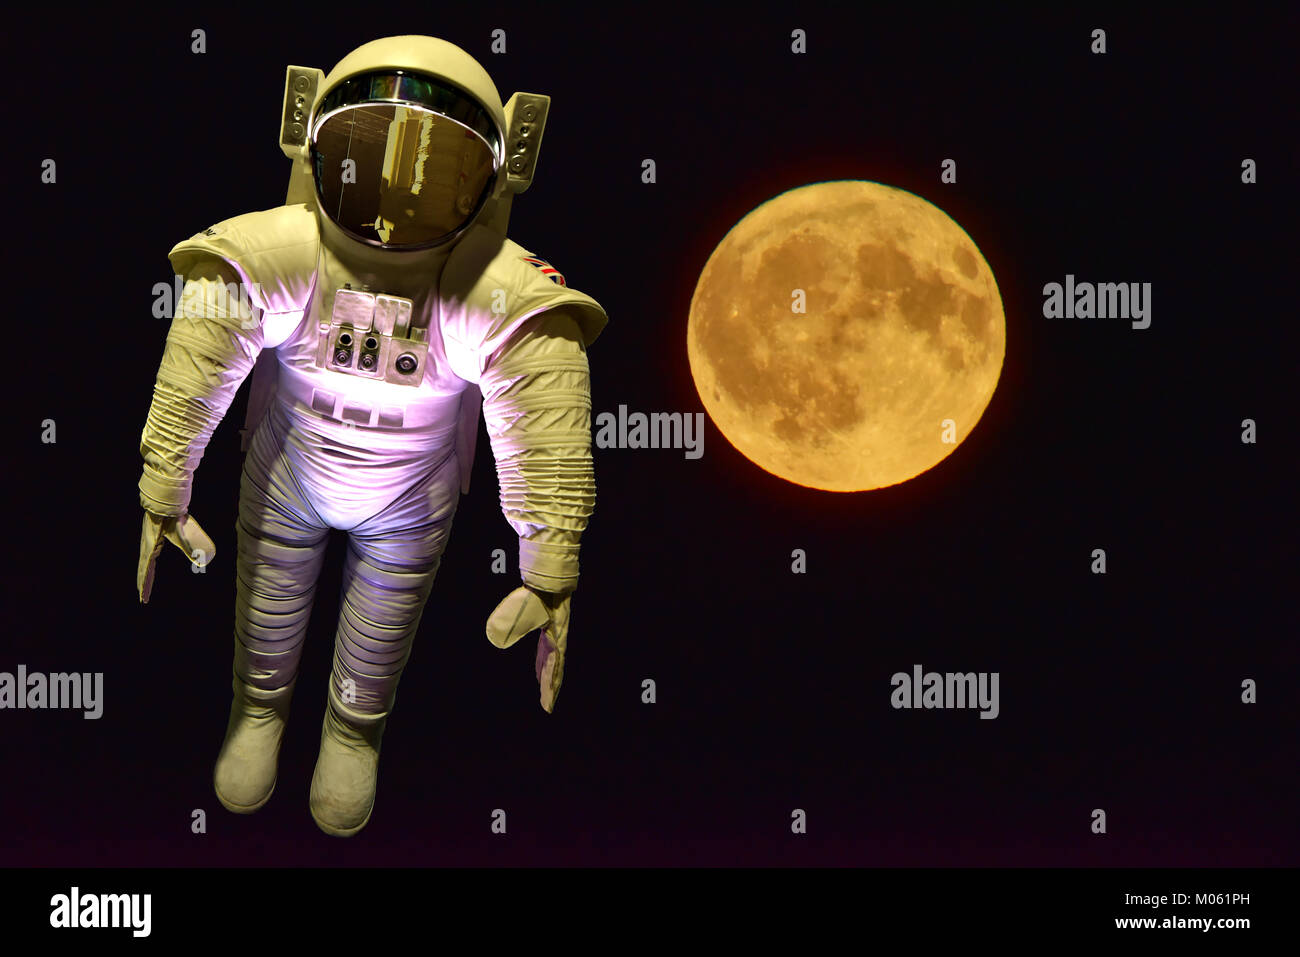 Tim Peakes Soyuz Russian mockup spacesuit with moon background Shildon Railway Museum - Stock Image